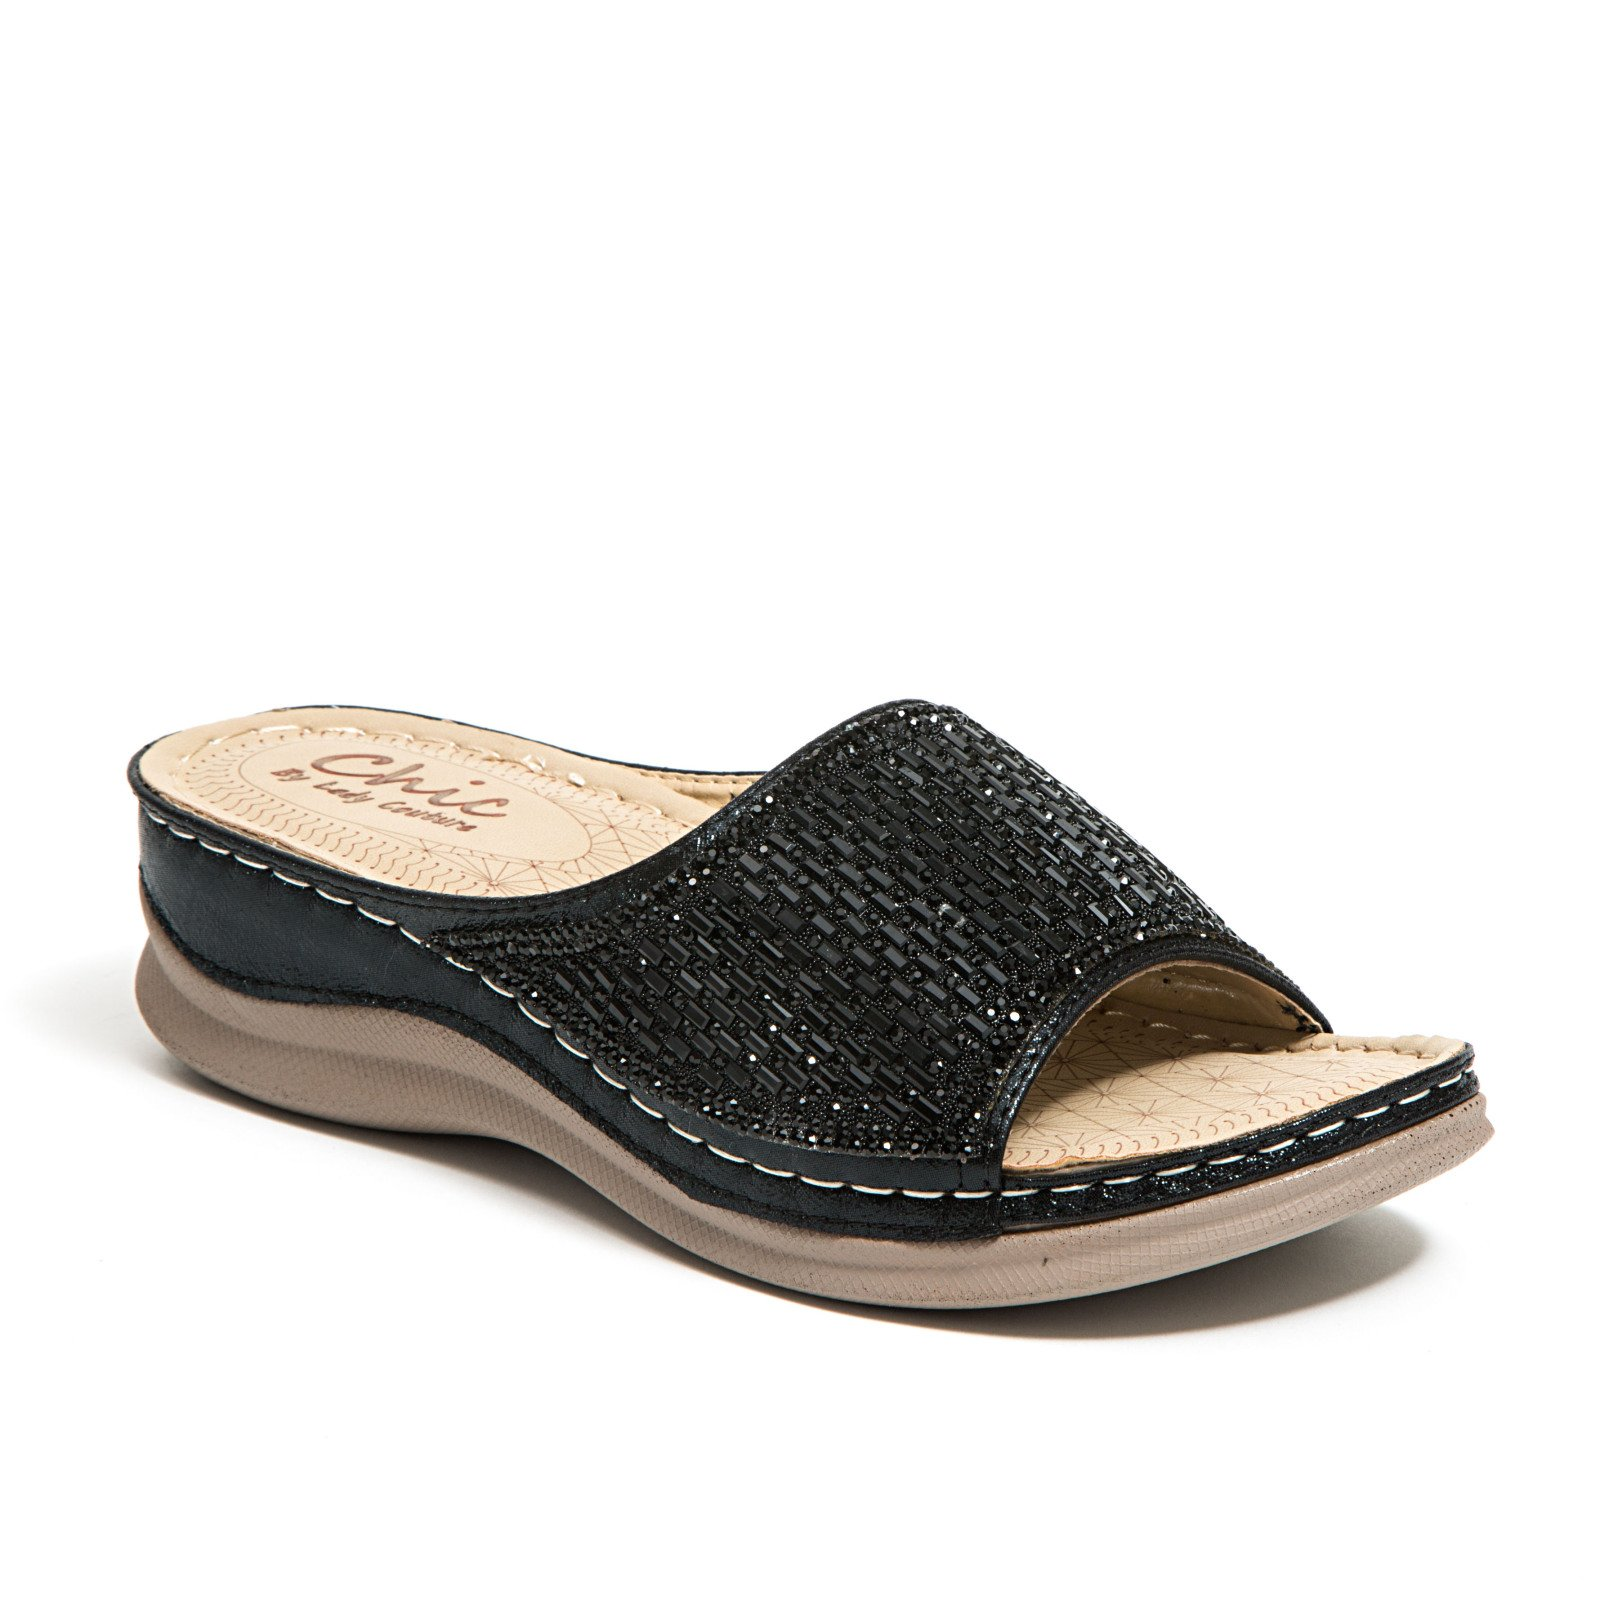 Lady Couture Glitz Slide with a Padded Foot Bed Women's Shoes Chic FINE Black 41